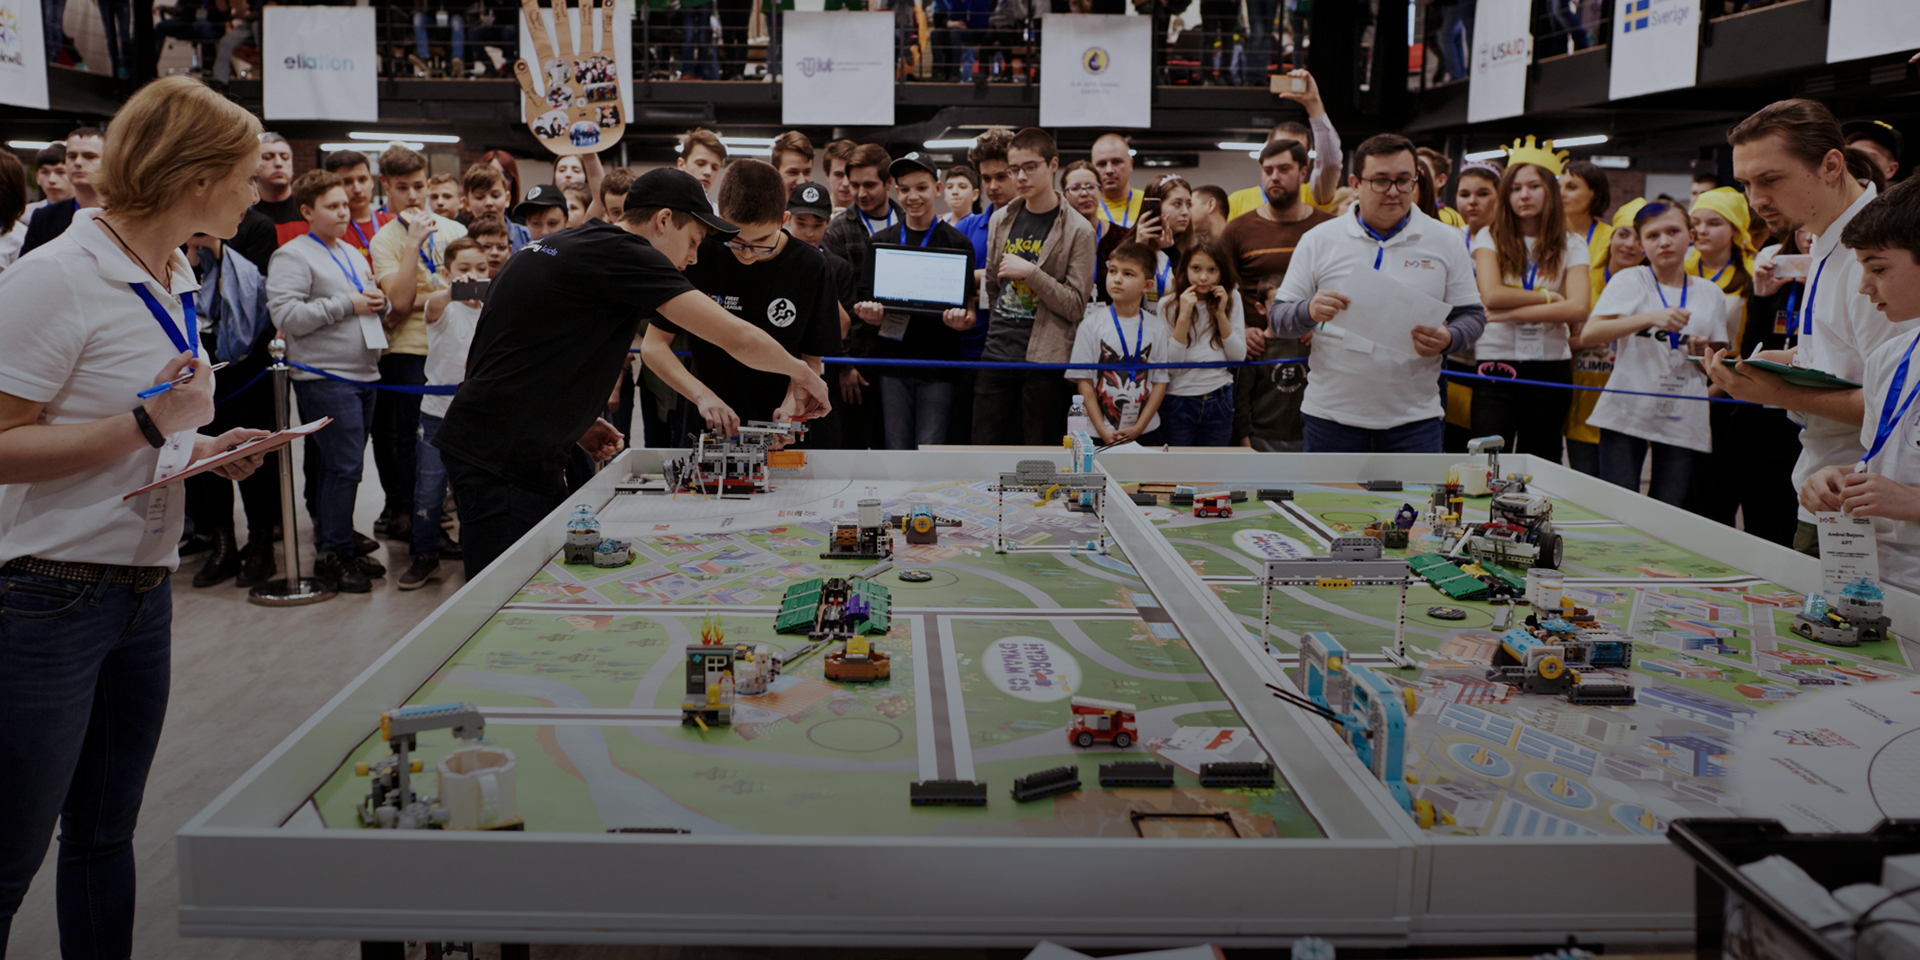 Youth compete in a robotics competition.